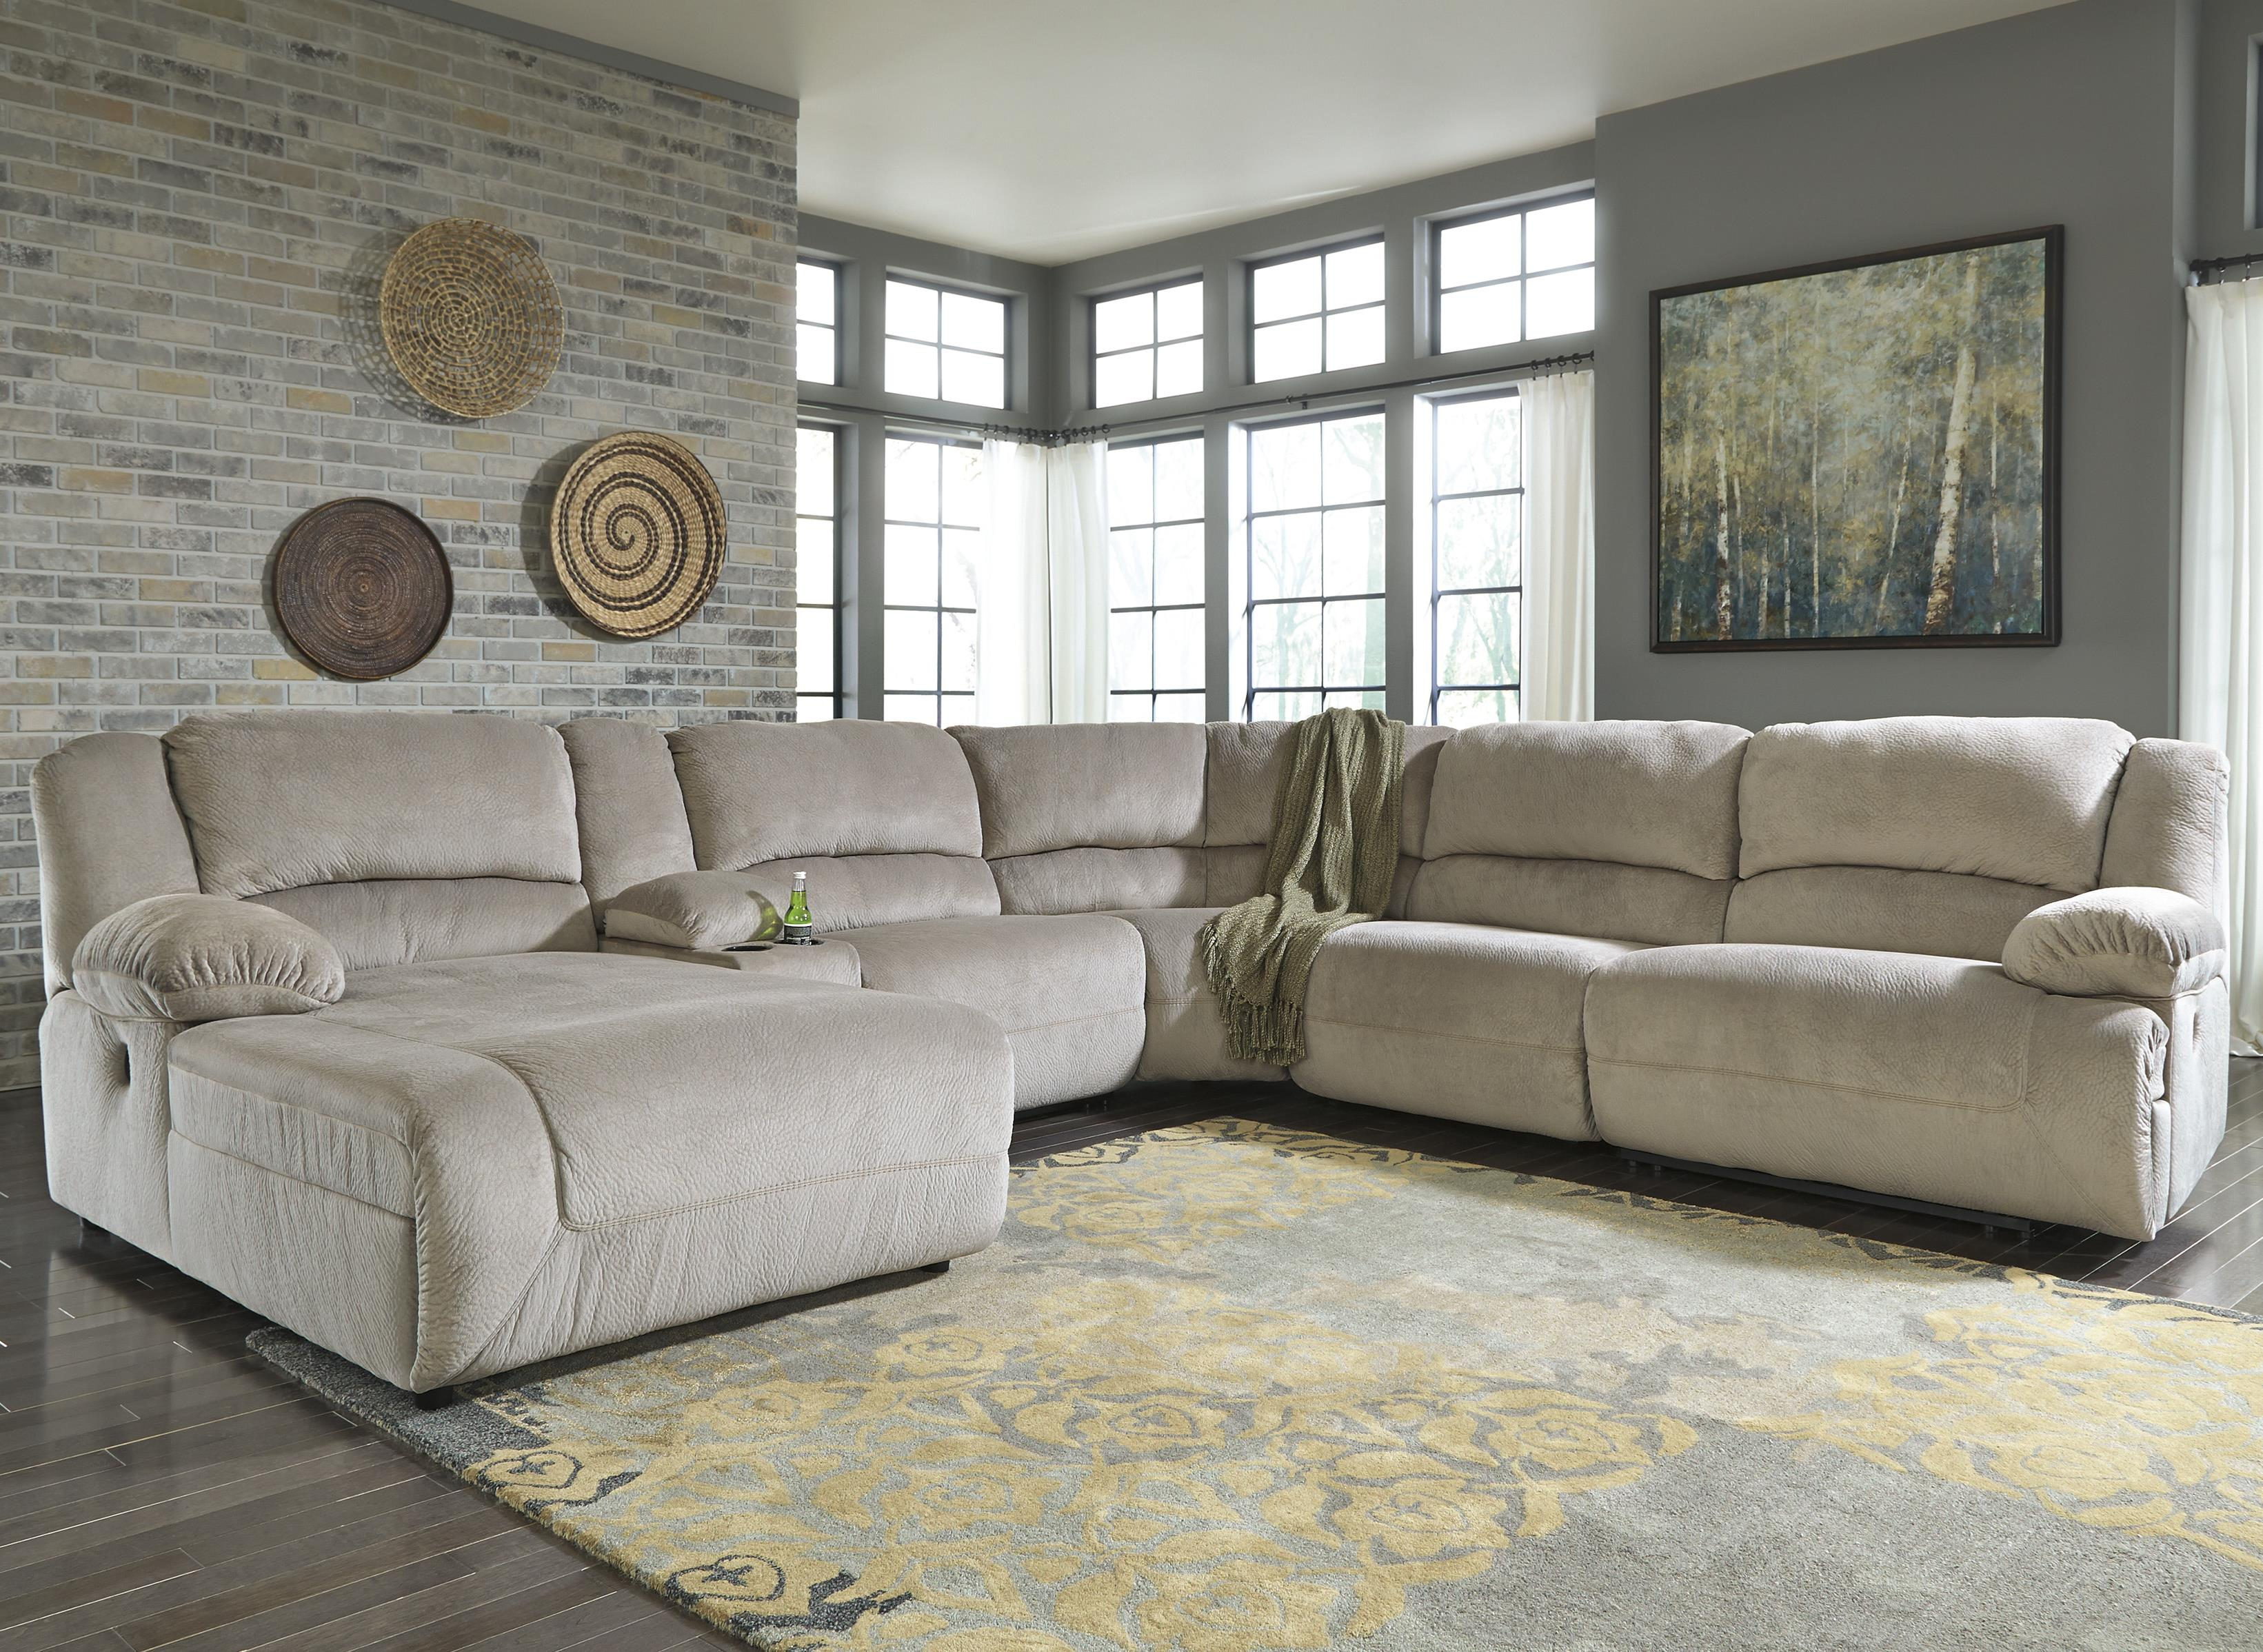 Signature Design by Ashley Toletta - Granite Reclining Sectional w/ Console & Chaise - Item Number: 5670305+57+46+77+19+41